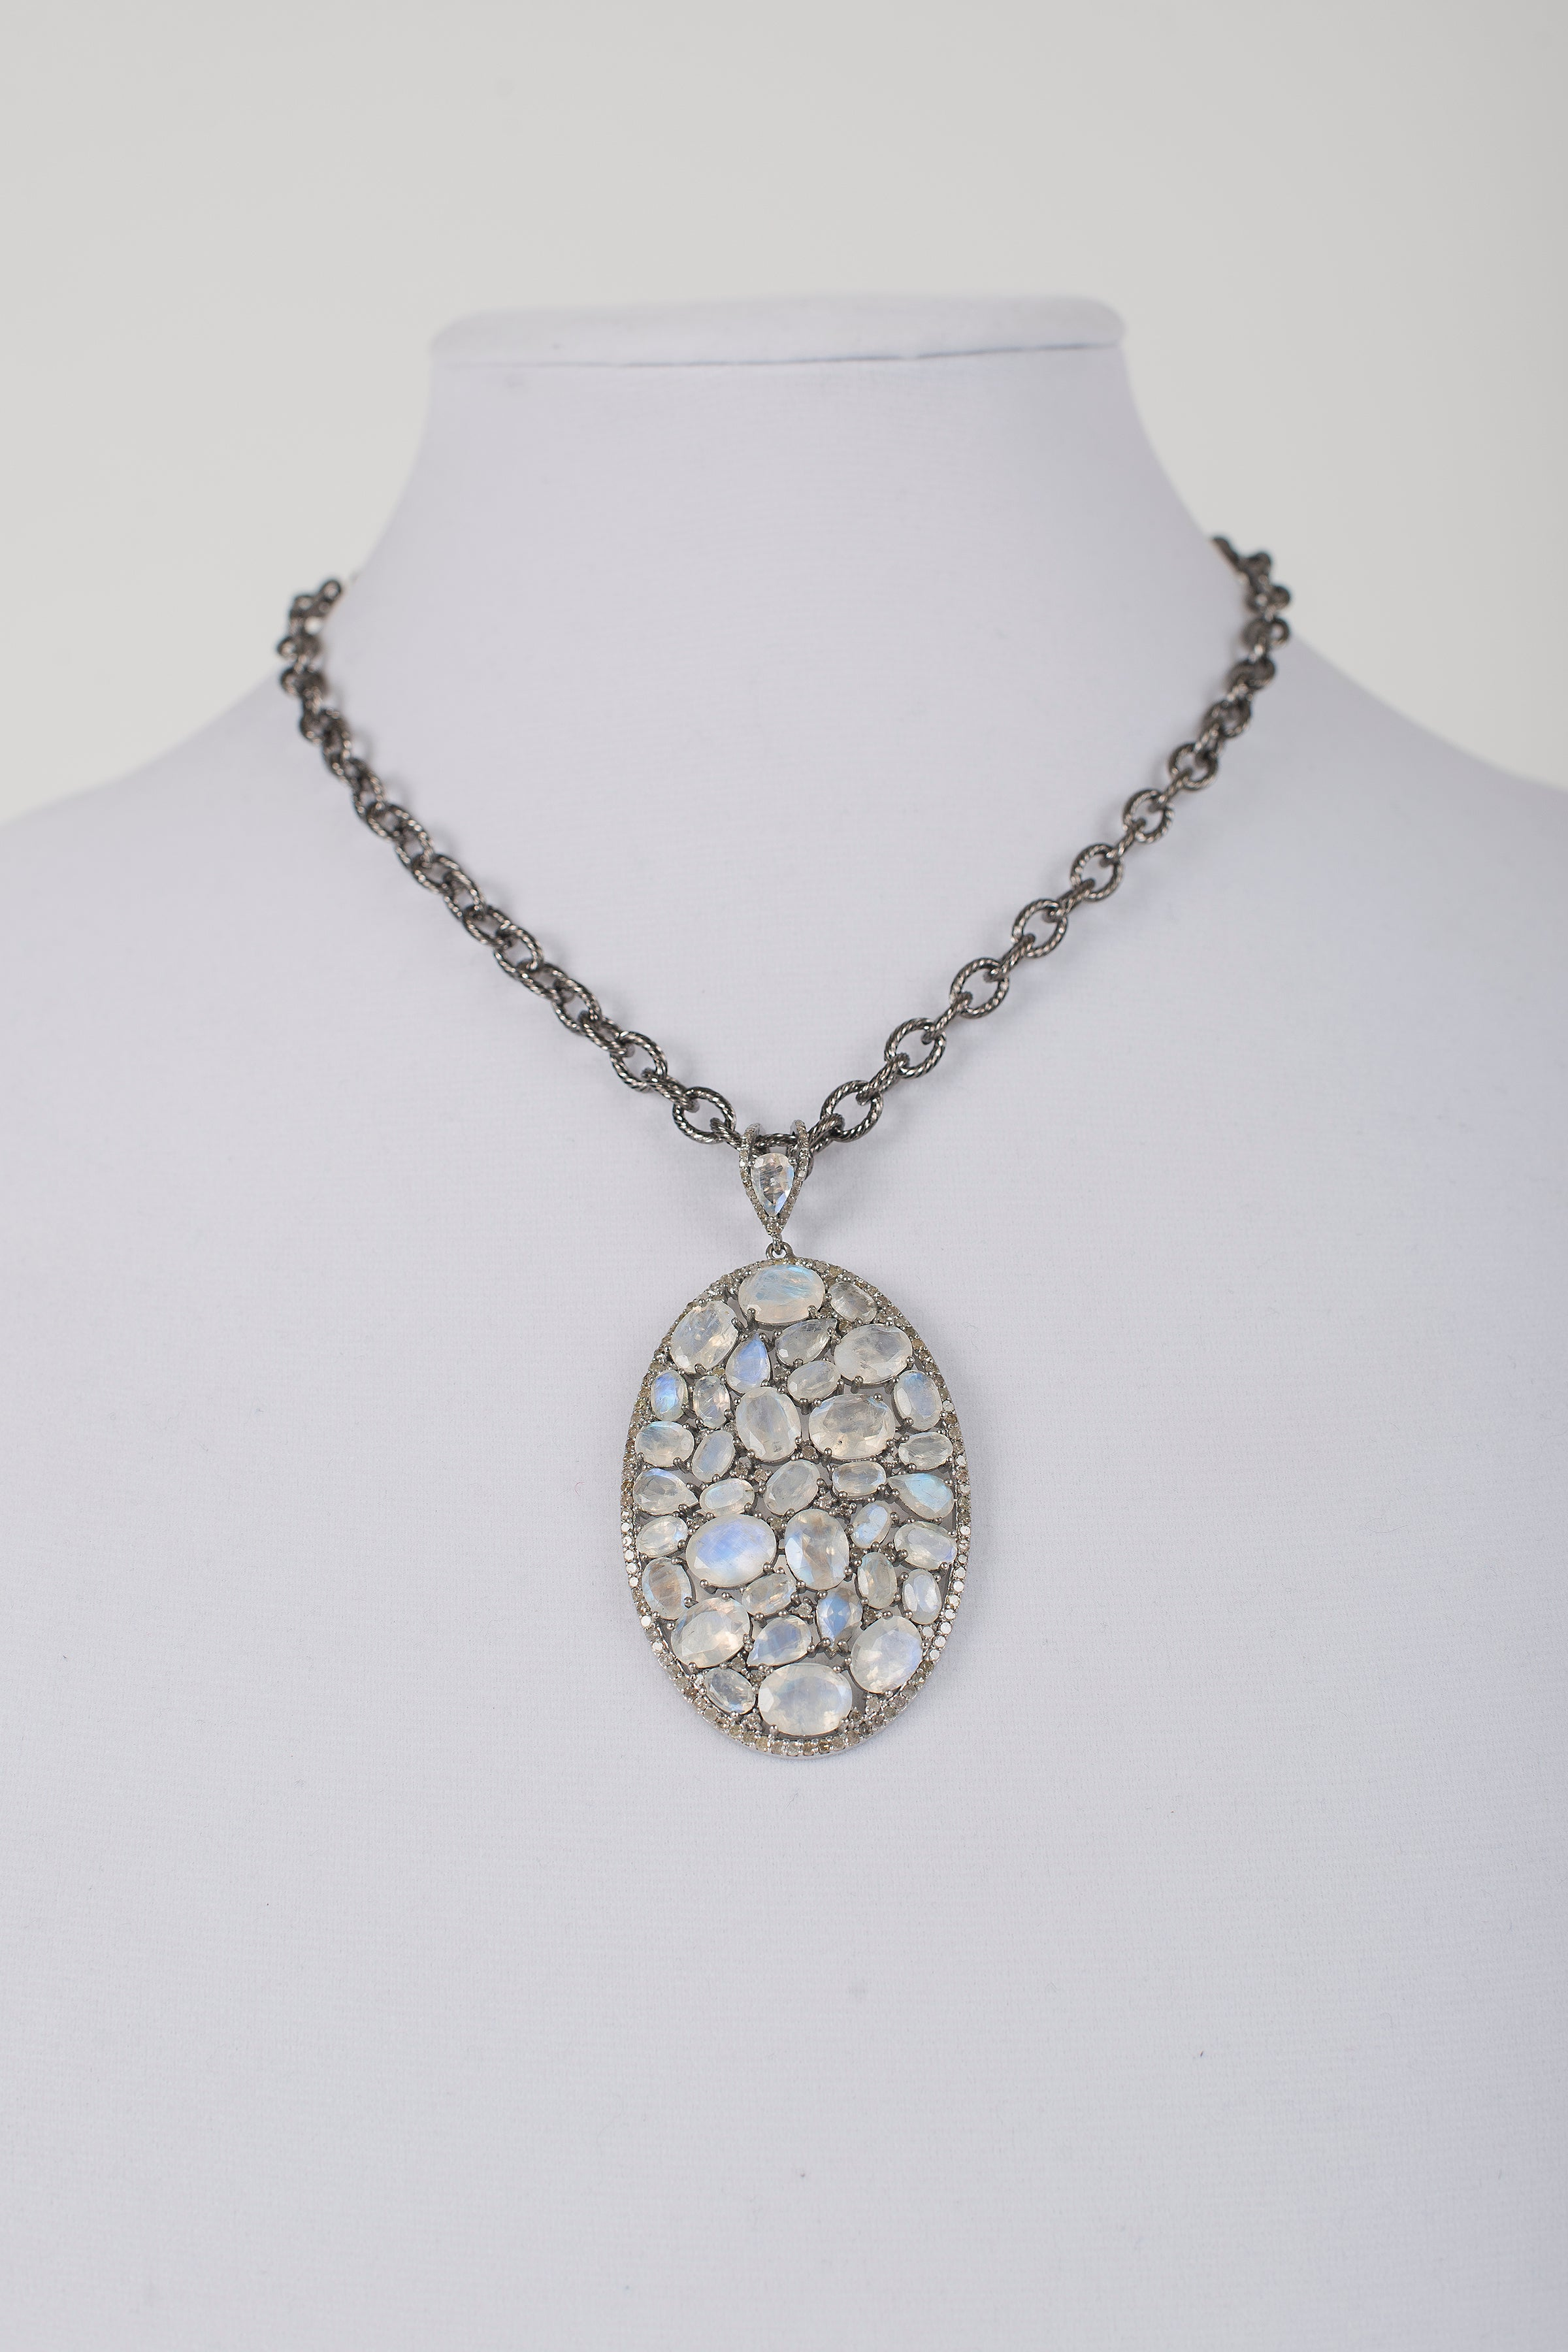 Moonstone and Pave Diamond Pendant on Brushed Metal Chain